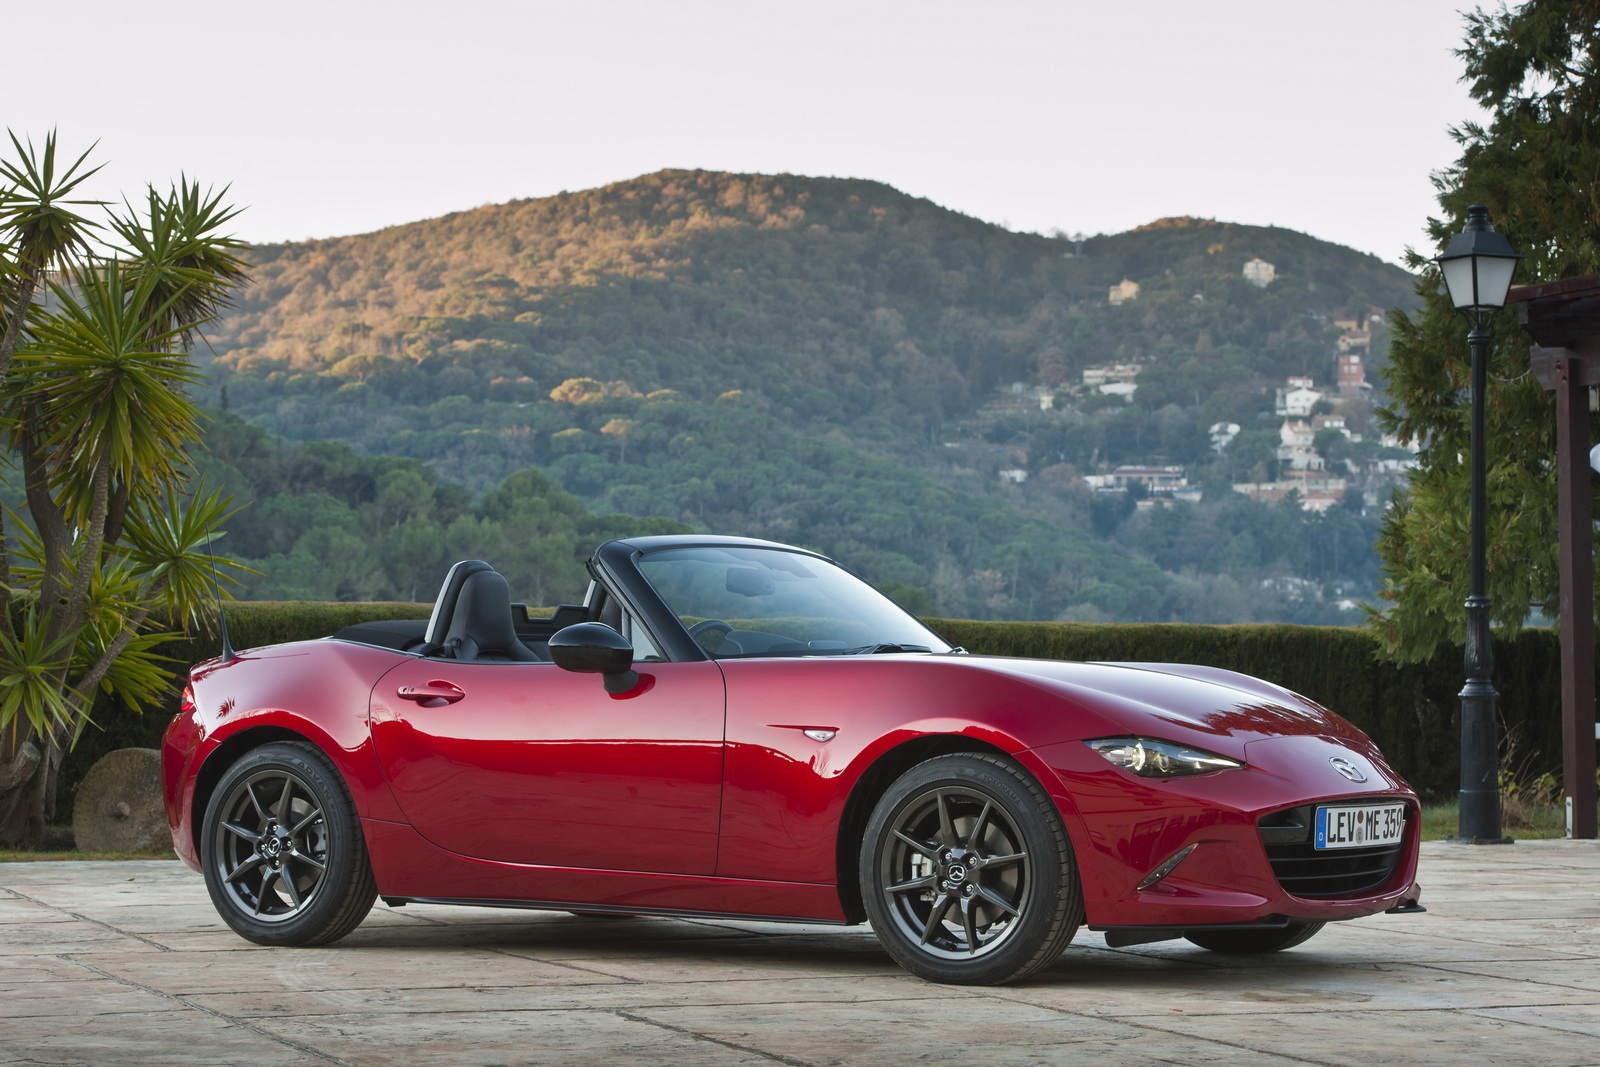 mazda throws fresh photos of new mx 5 nd 68 pics carscoops. Black Bedroom Furniture Sets. Home Design Ideas